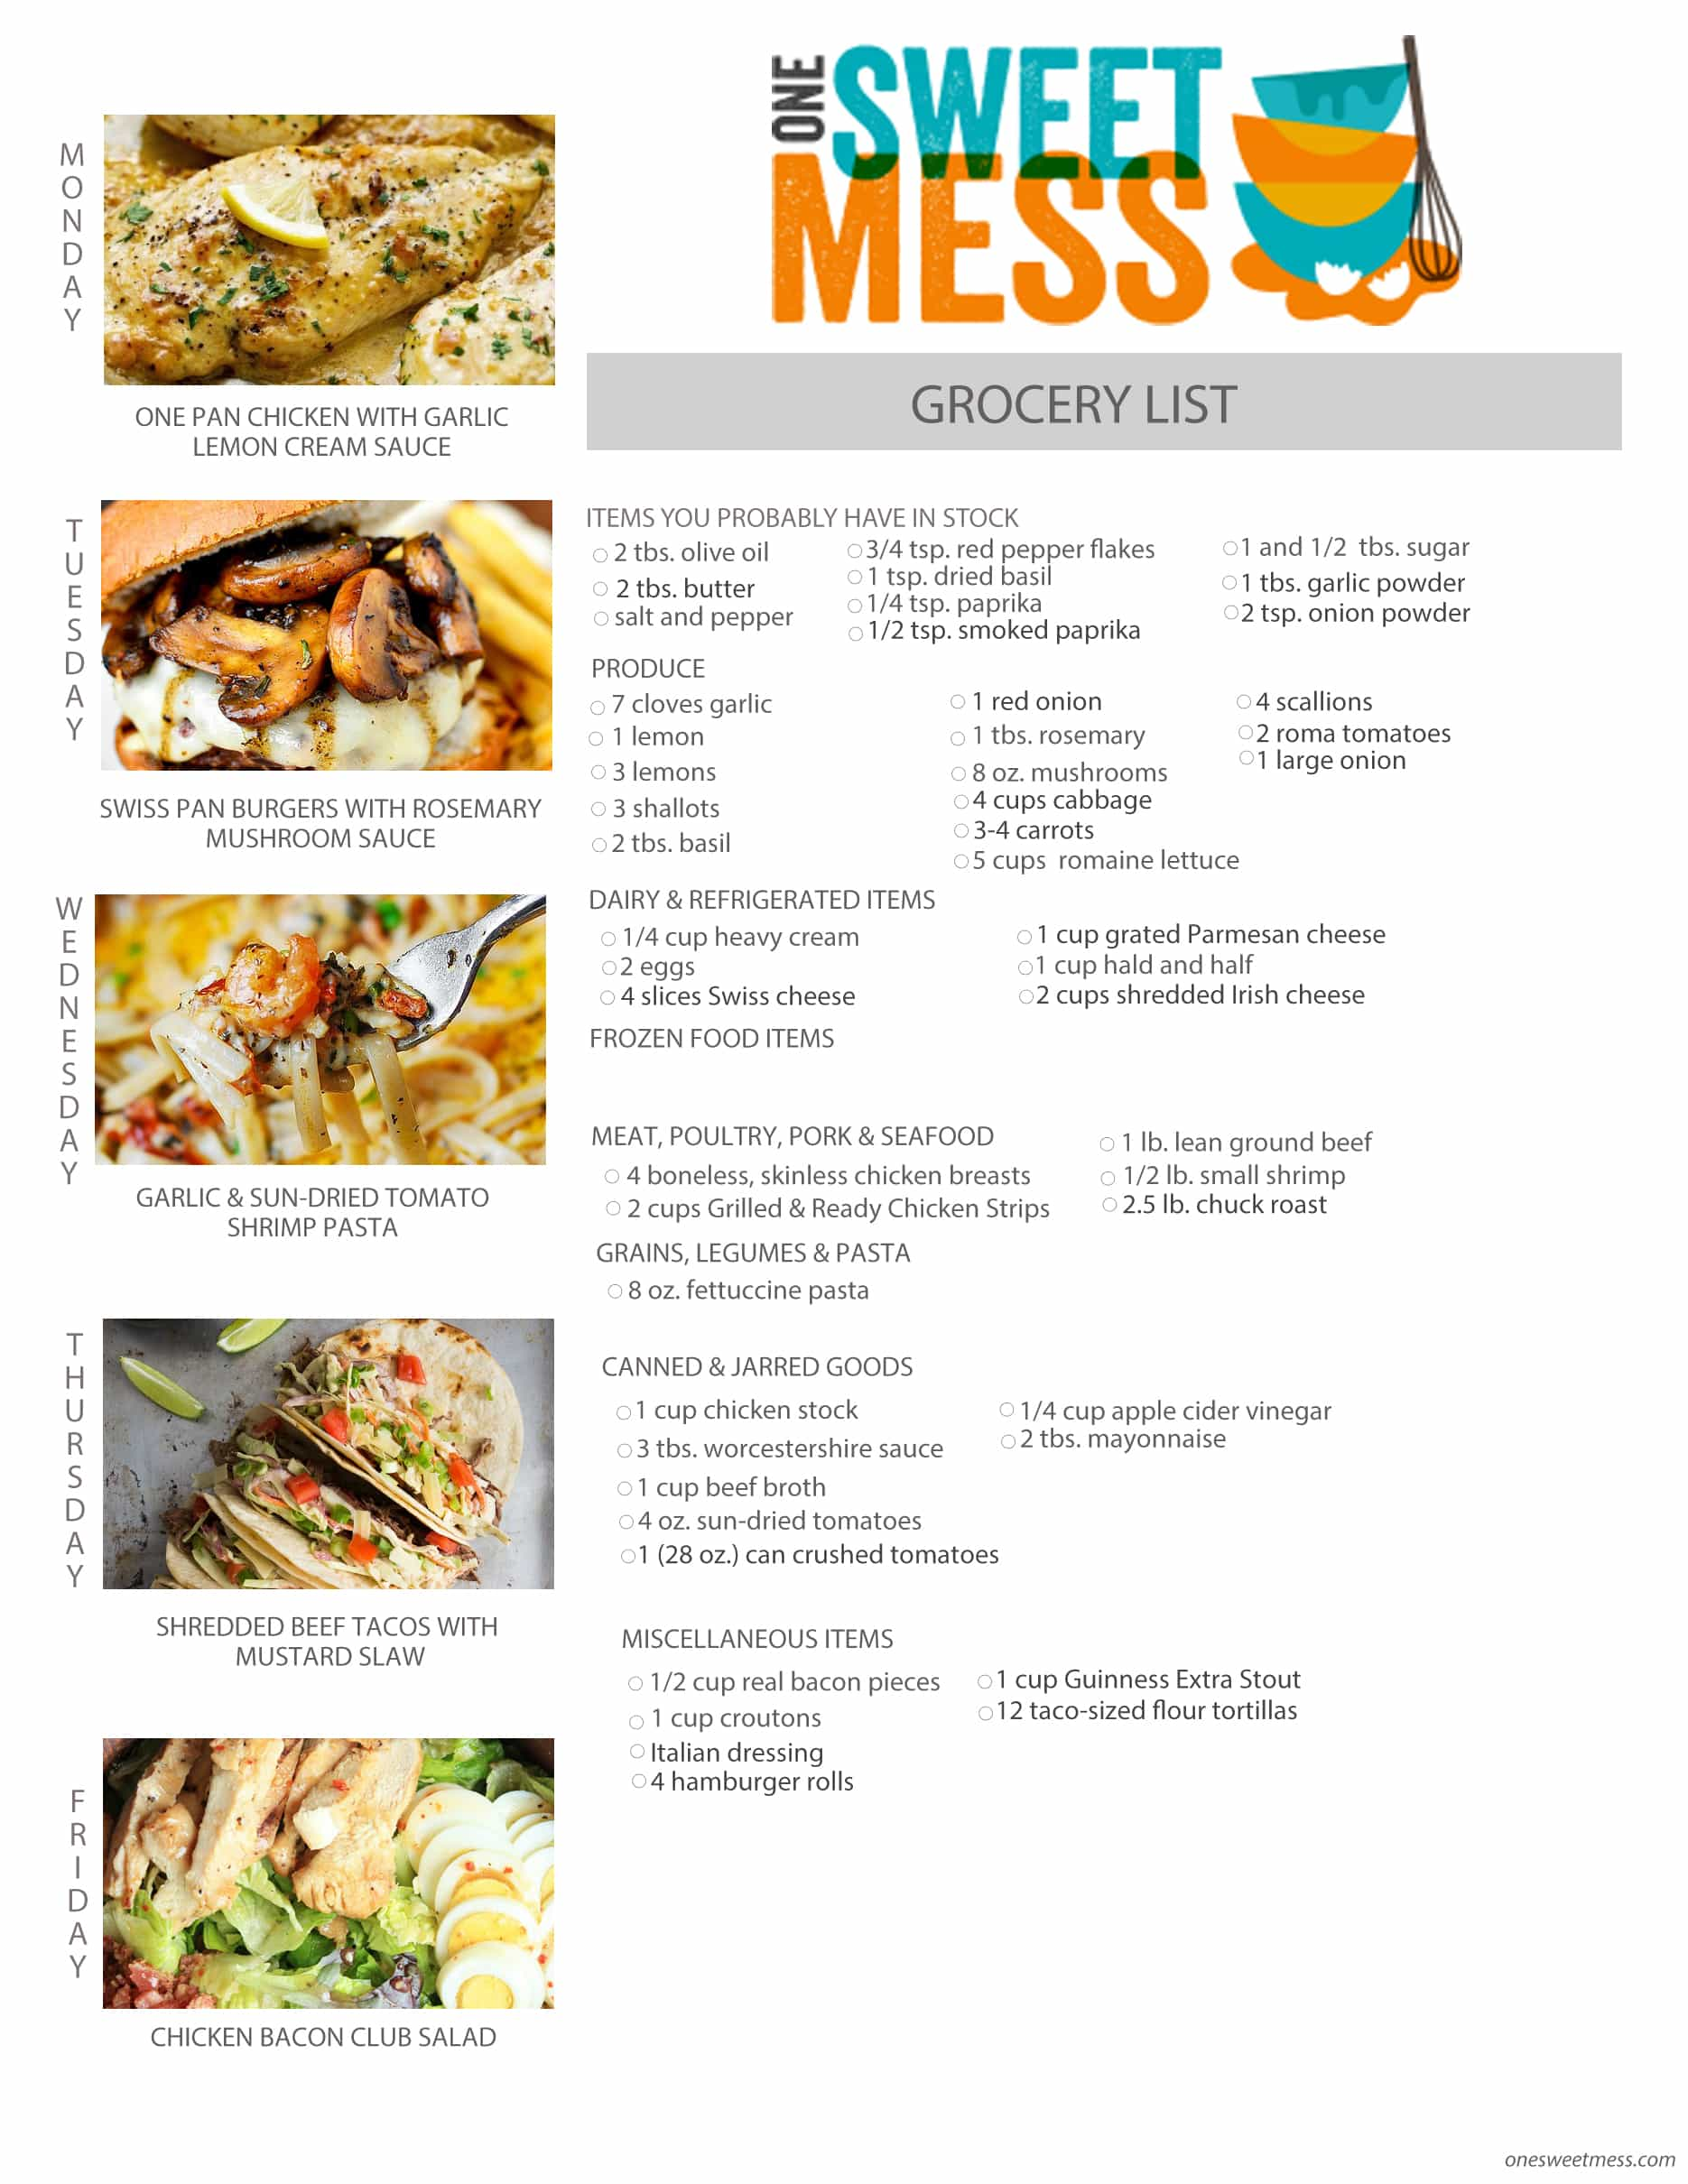 Week of March 14th, 2016 Weekly Meal Plan + Printable Grocery List